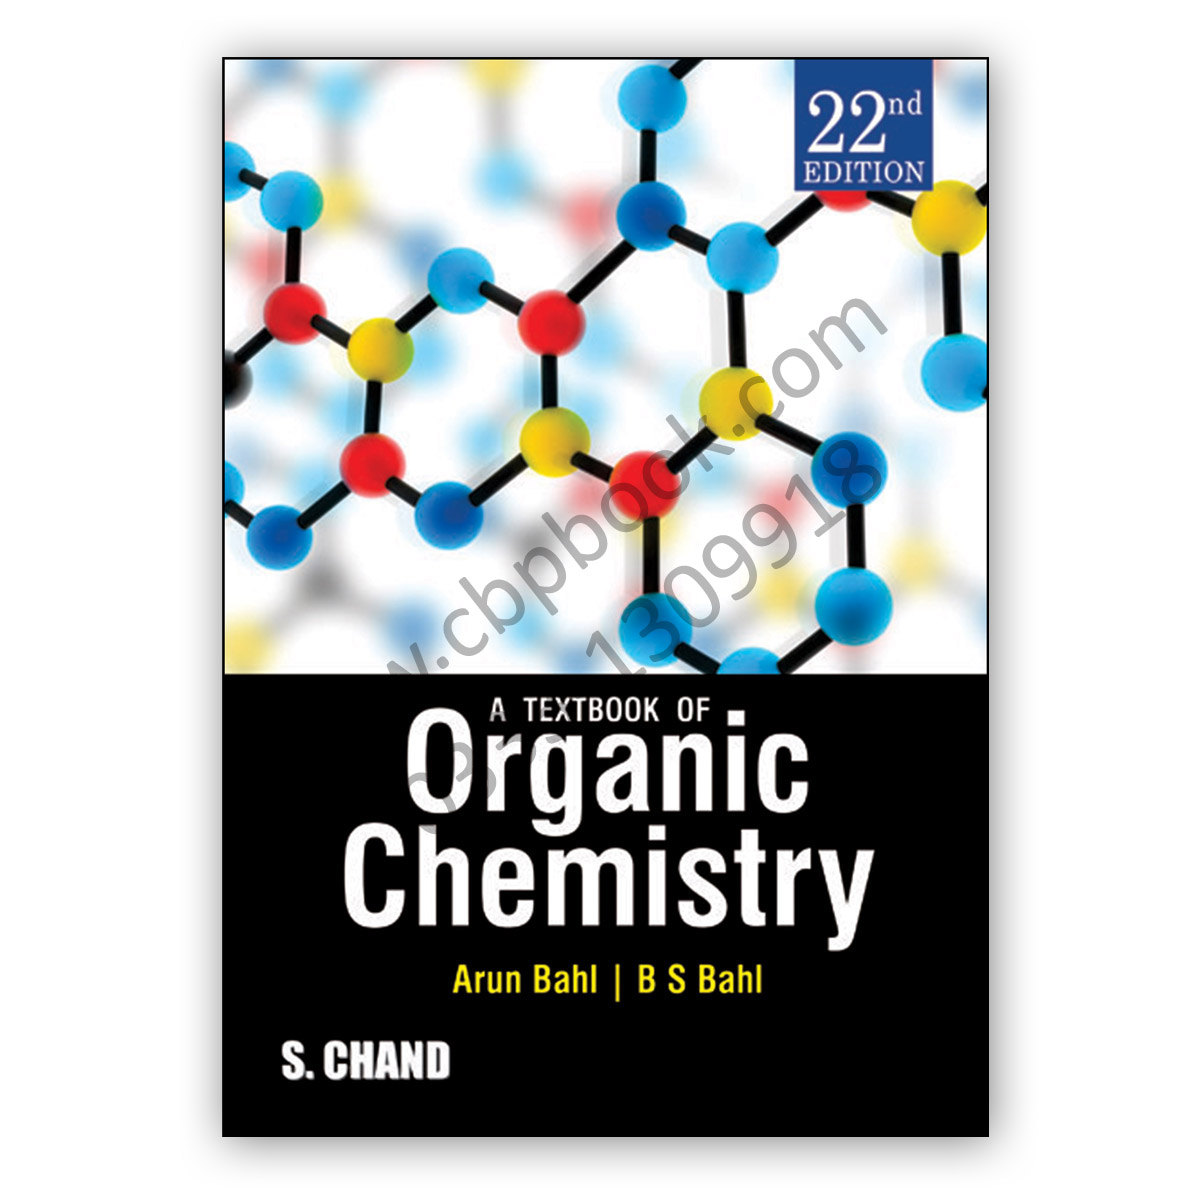 a textbook of organic chemistry arun bahl & b s bahl 22nd edition - s chand